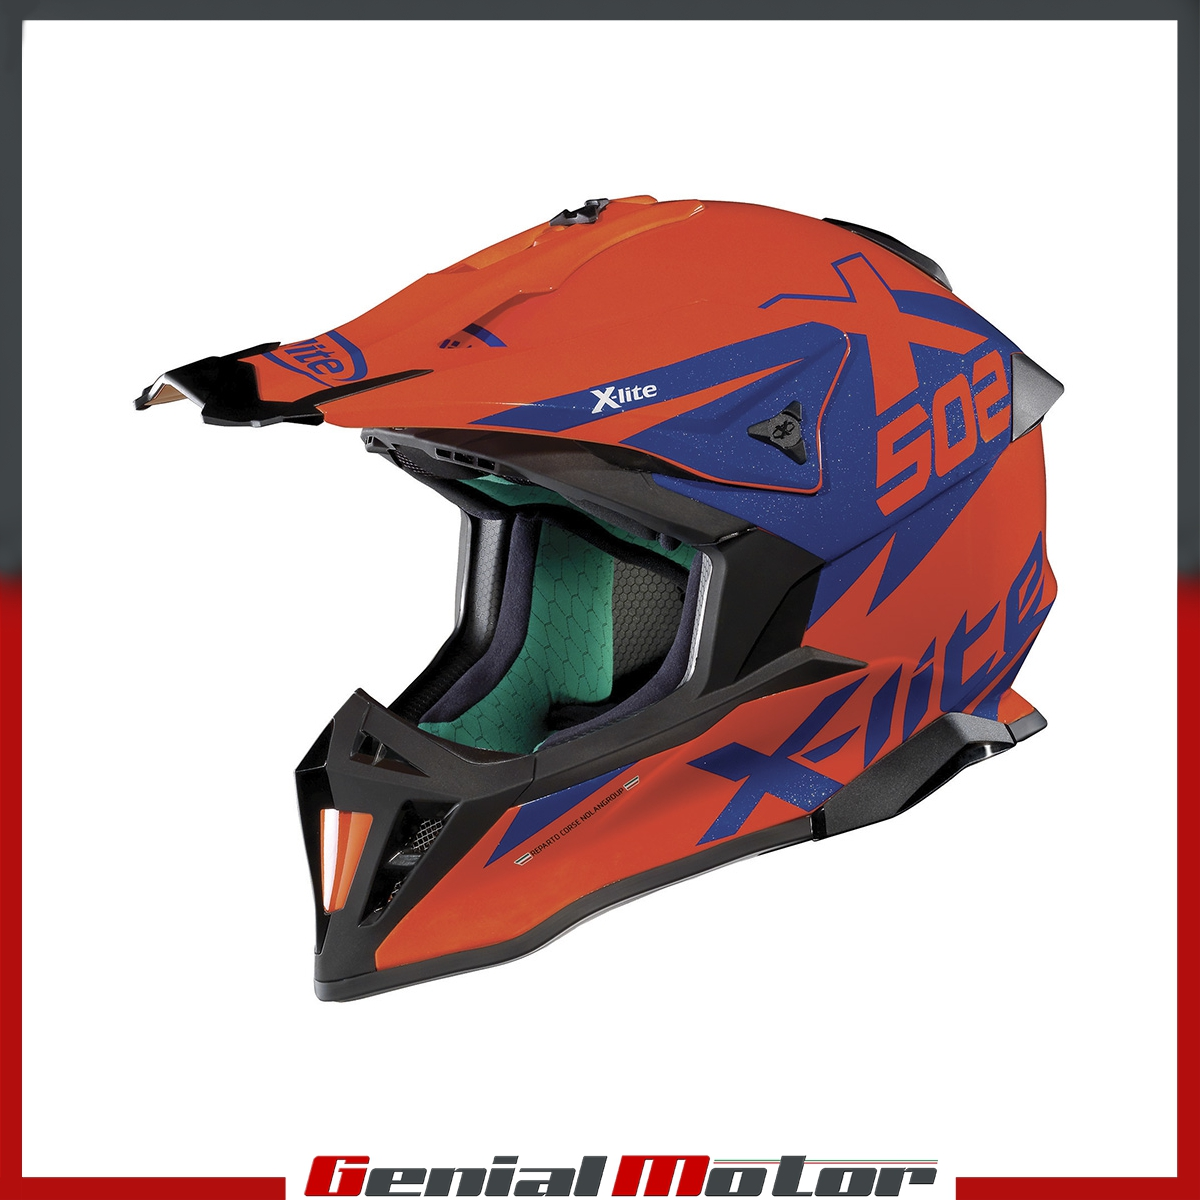 CASQUE-X-LITE-X-502-MATRIS-017-TAILLE-M-LED-ORANGE